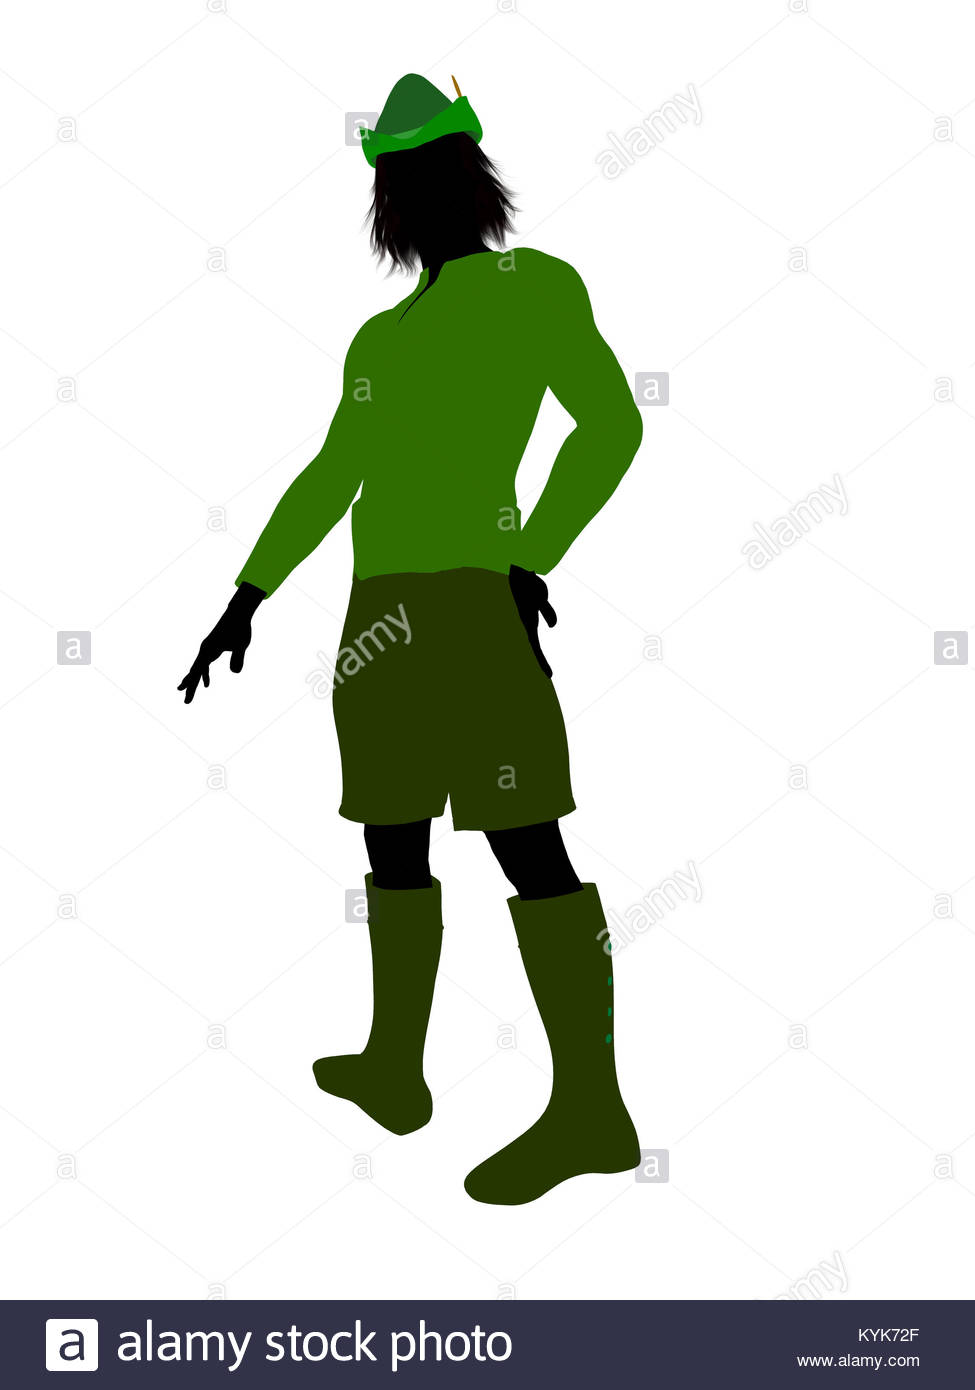 975x1390 Peter Pan Illustration Silhouette On A White Background Stock